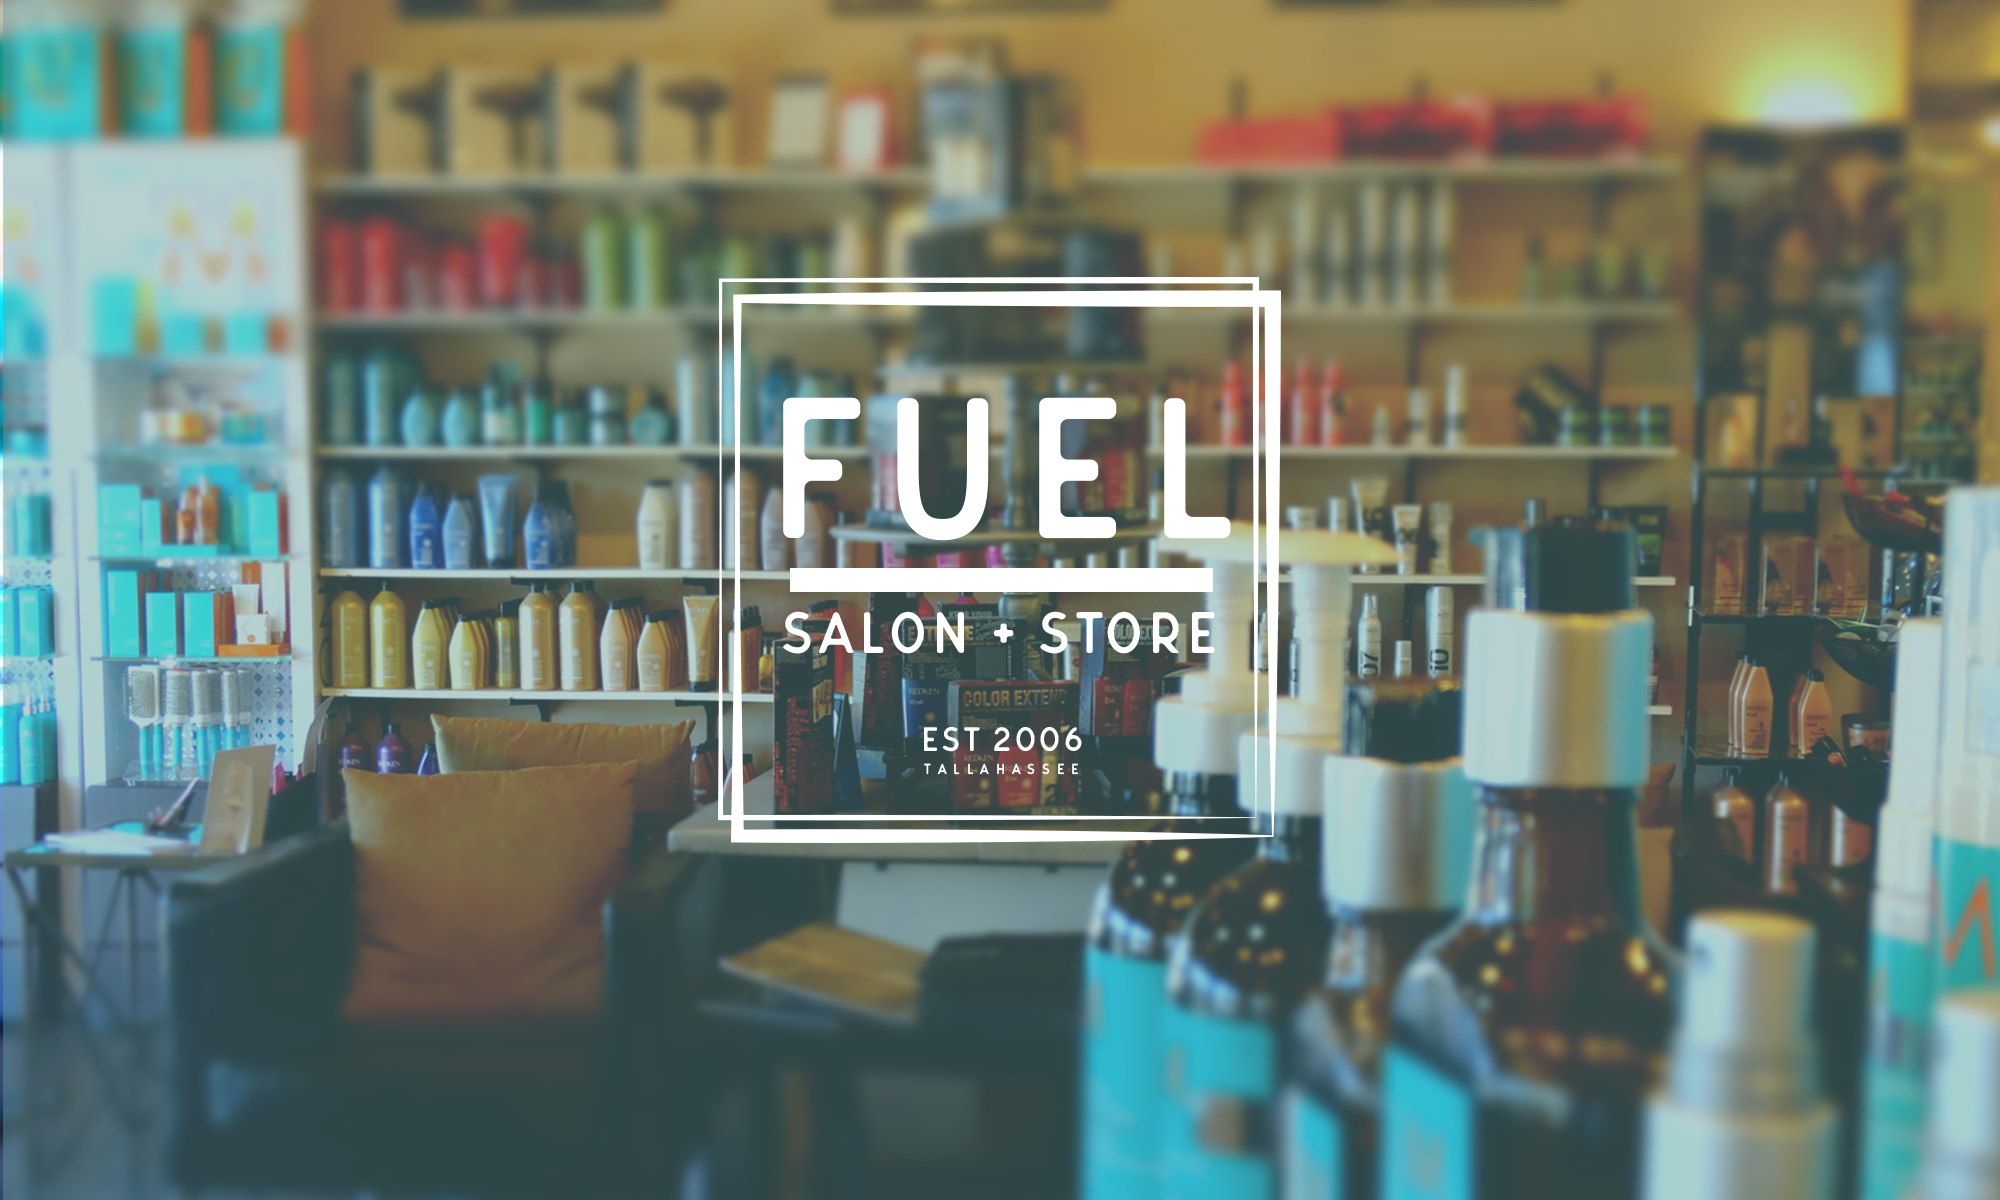 fuel salon + store